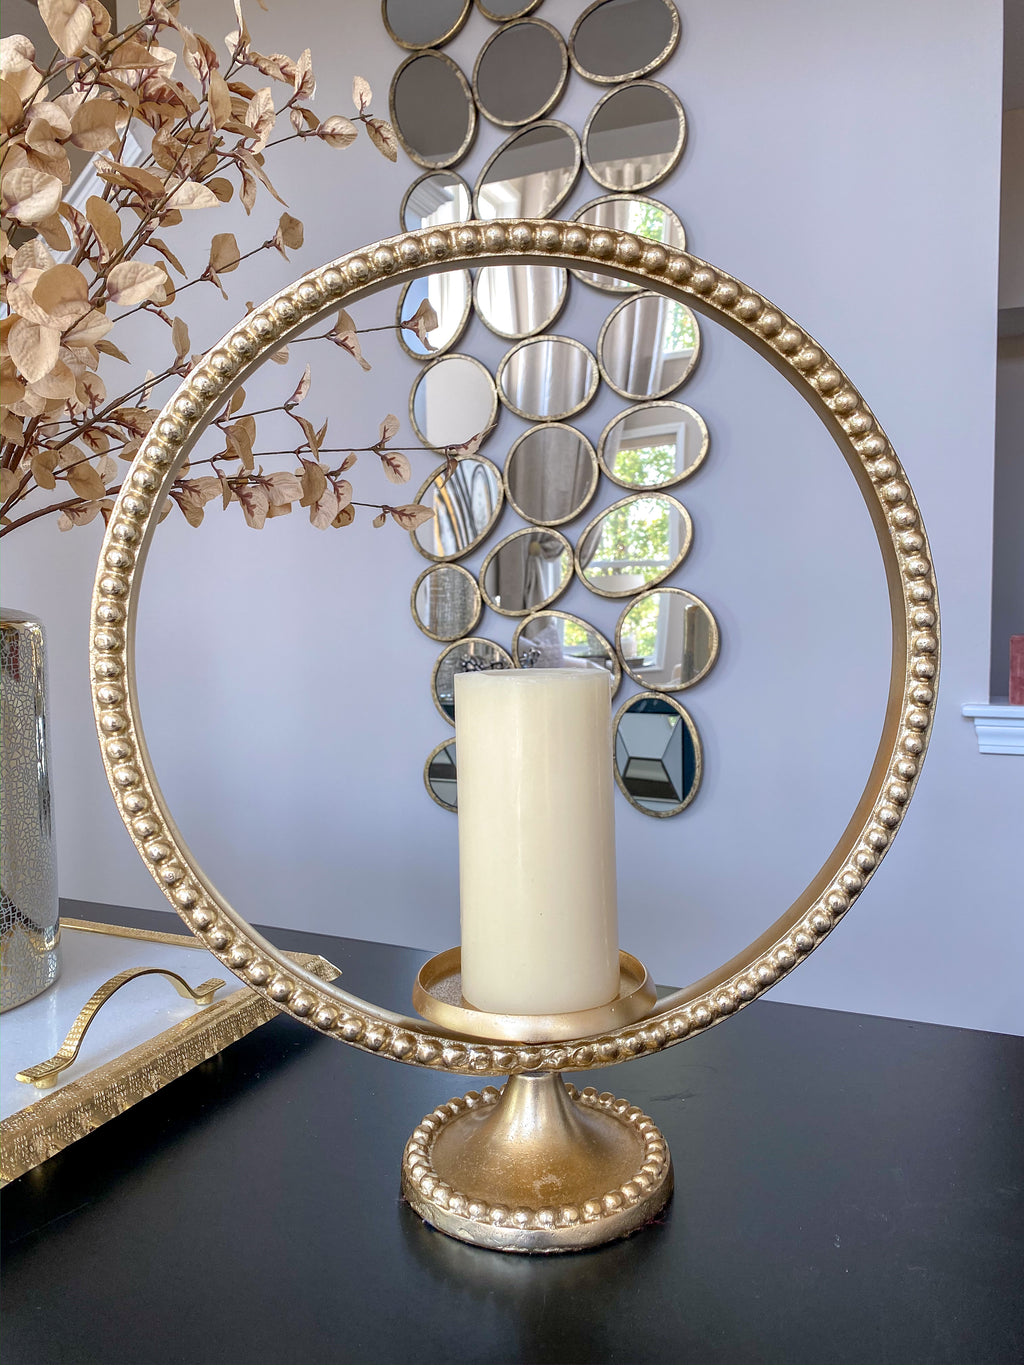 Large Gold Ring Beaded Candleholder-Inspire Me! Home Decor